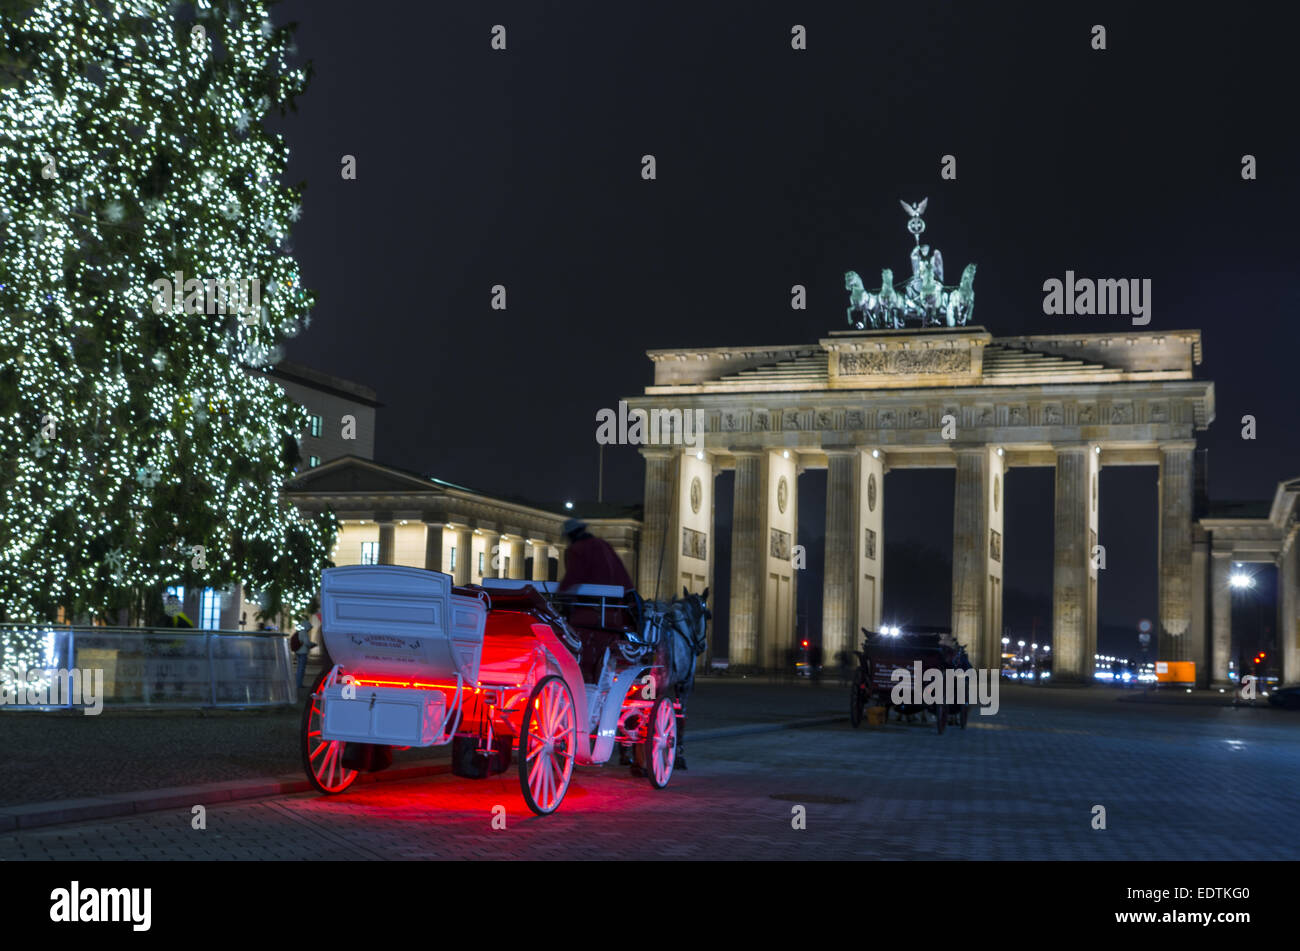 weihnachtsbaum am brandenburger tor berlin deutschland. Black Bedroom Furniture Sets. Home Design Ideas